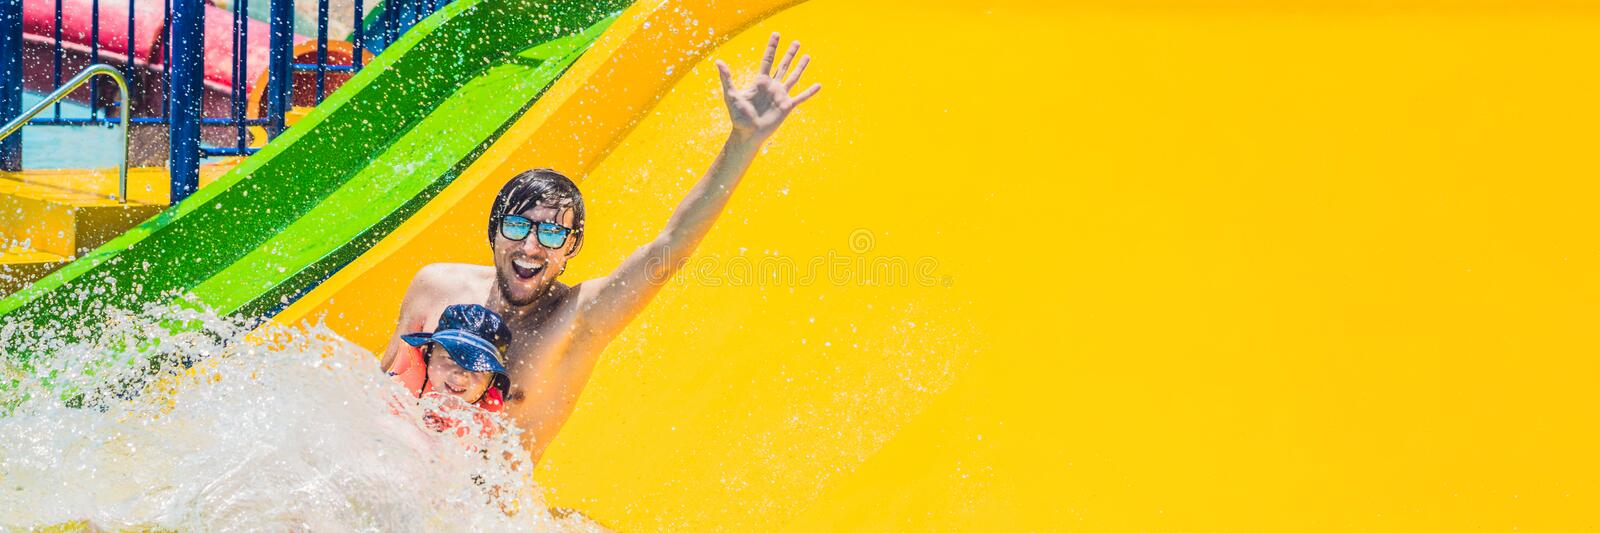 BANNER Father and son on a water slide in the water park Long Format royalty free stock photo